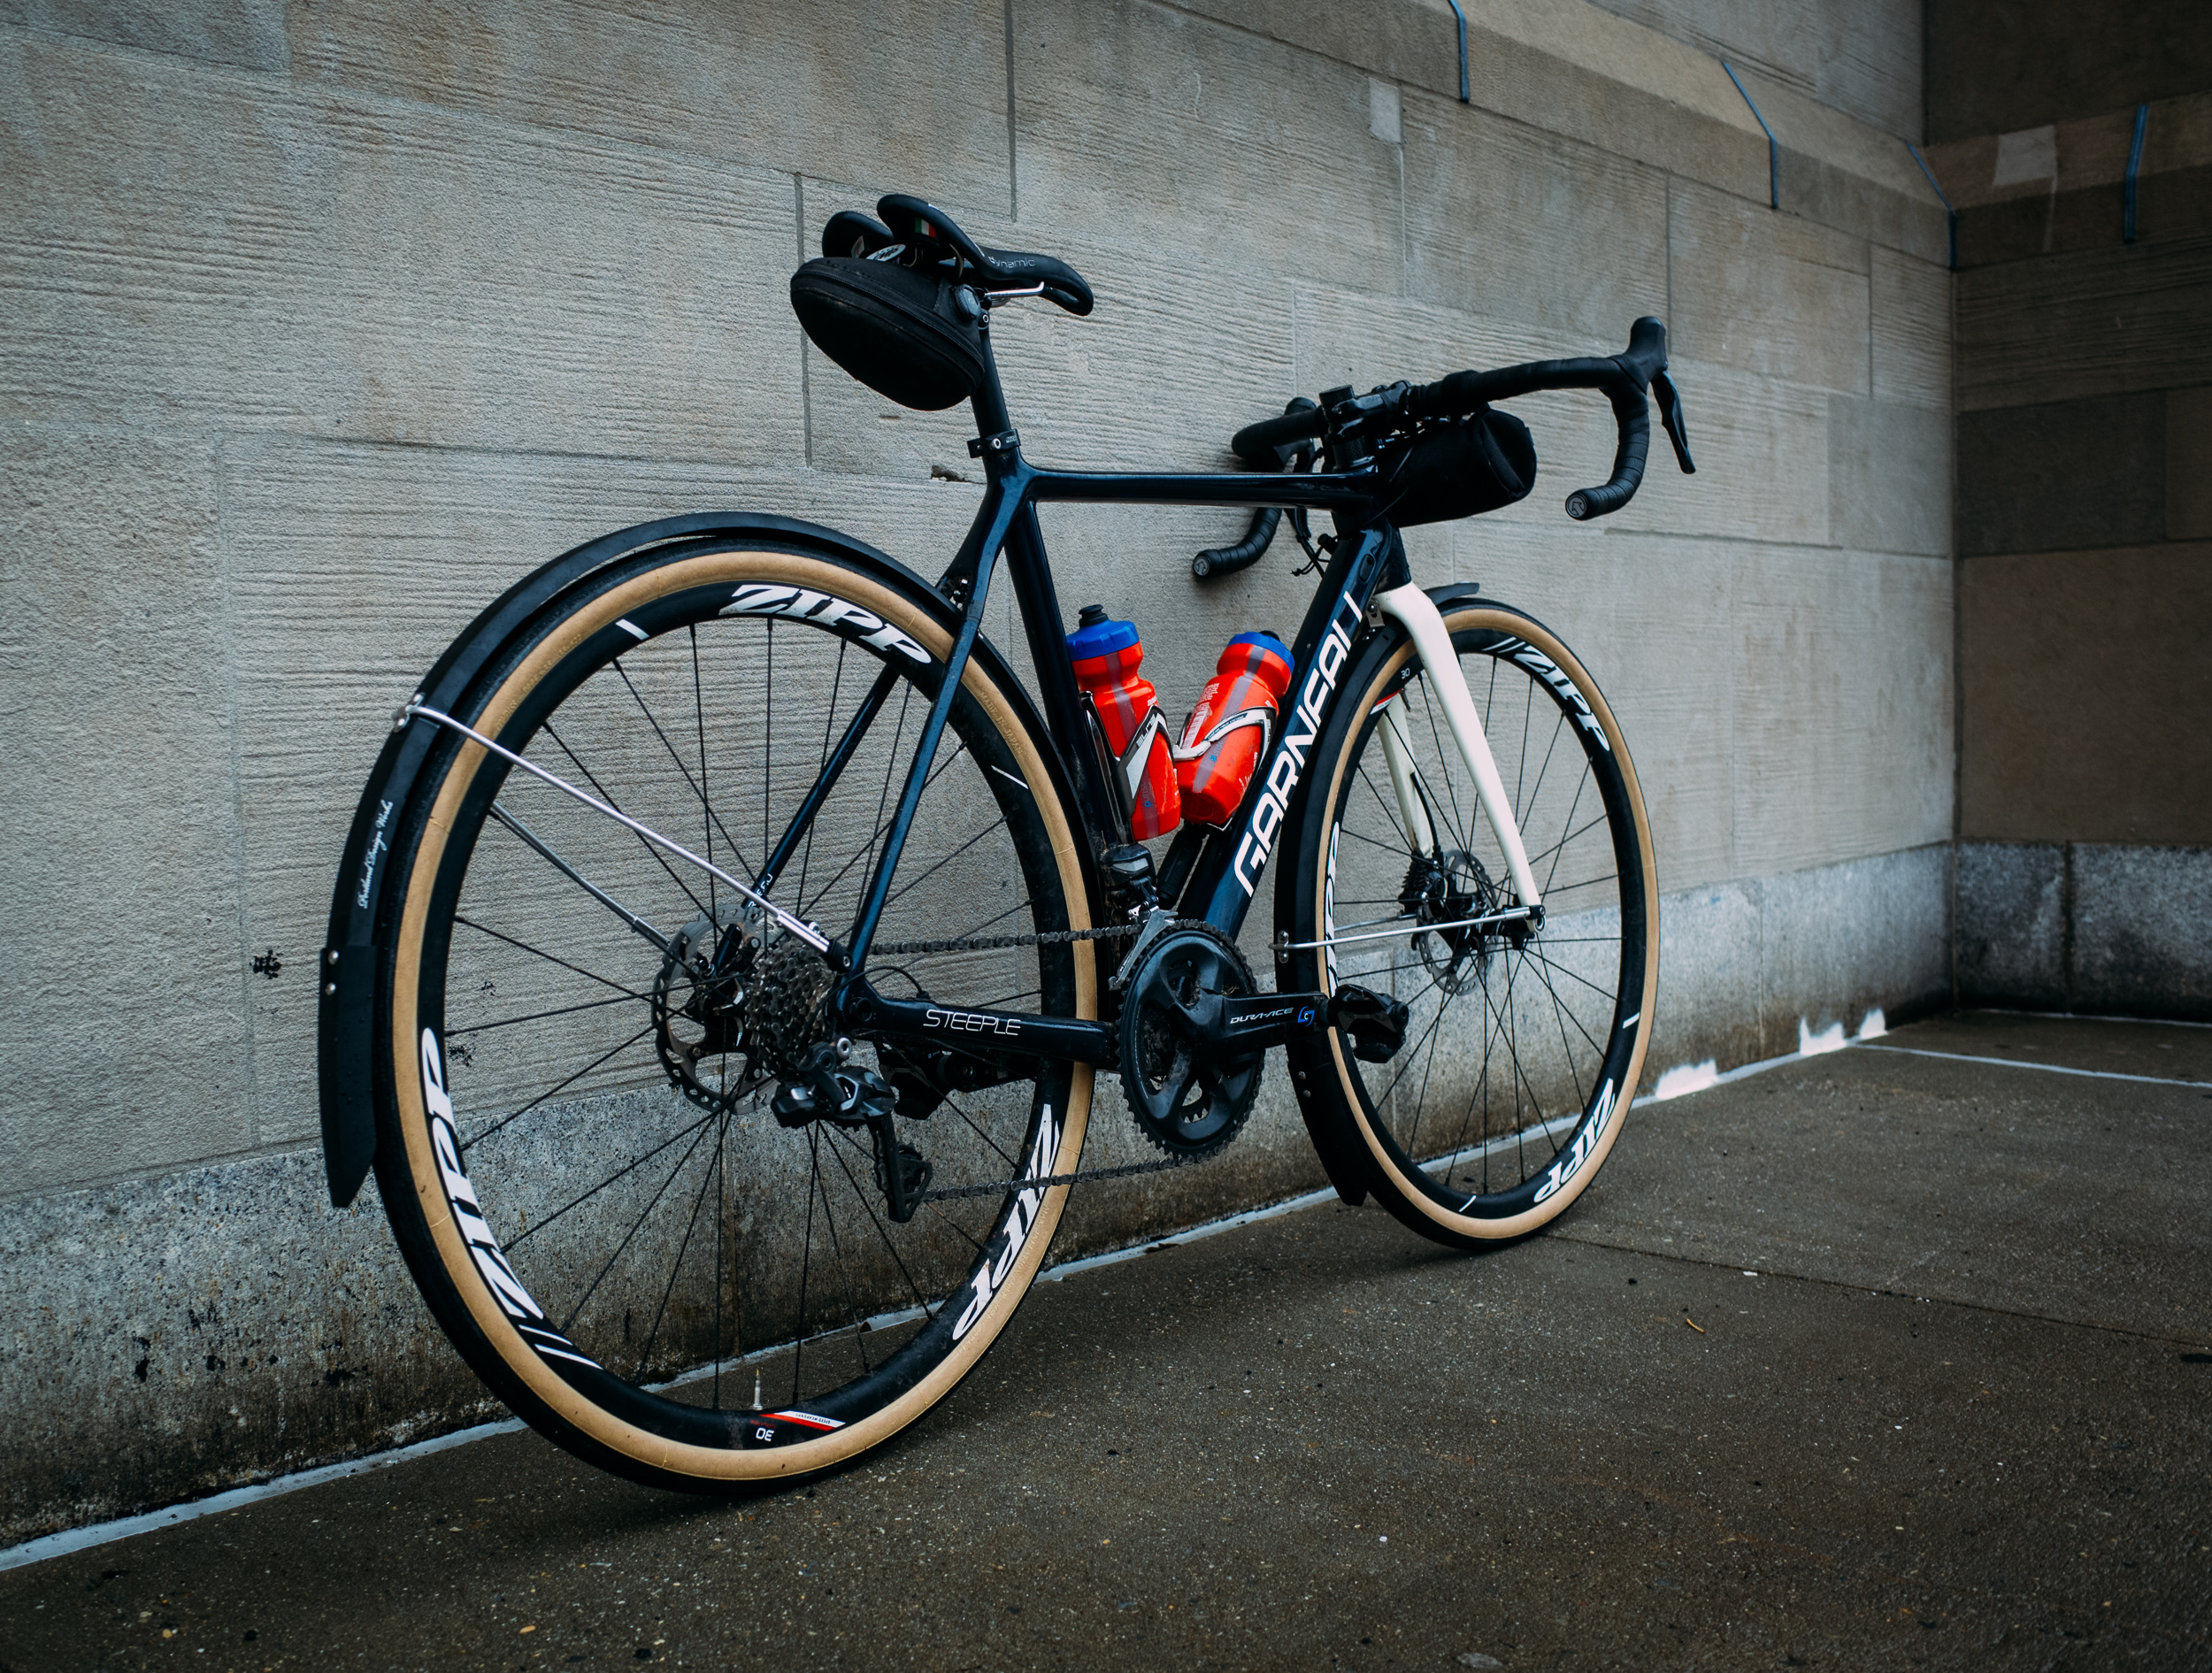 to-be-determined-portland-design-works-fender-review-1004.jpg